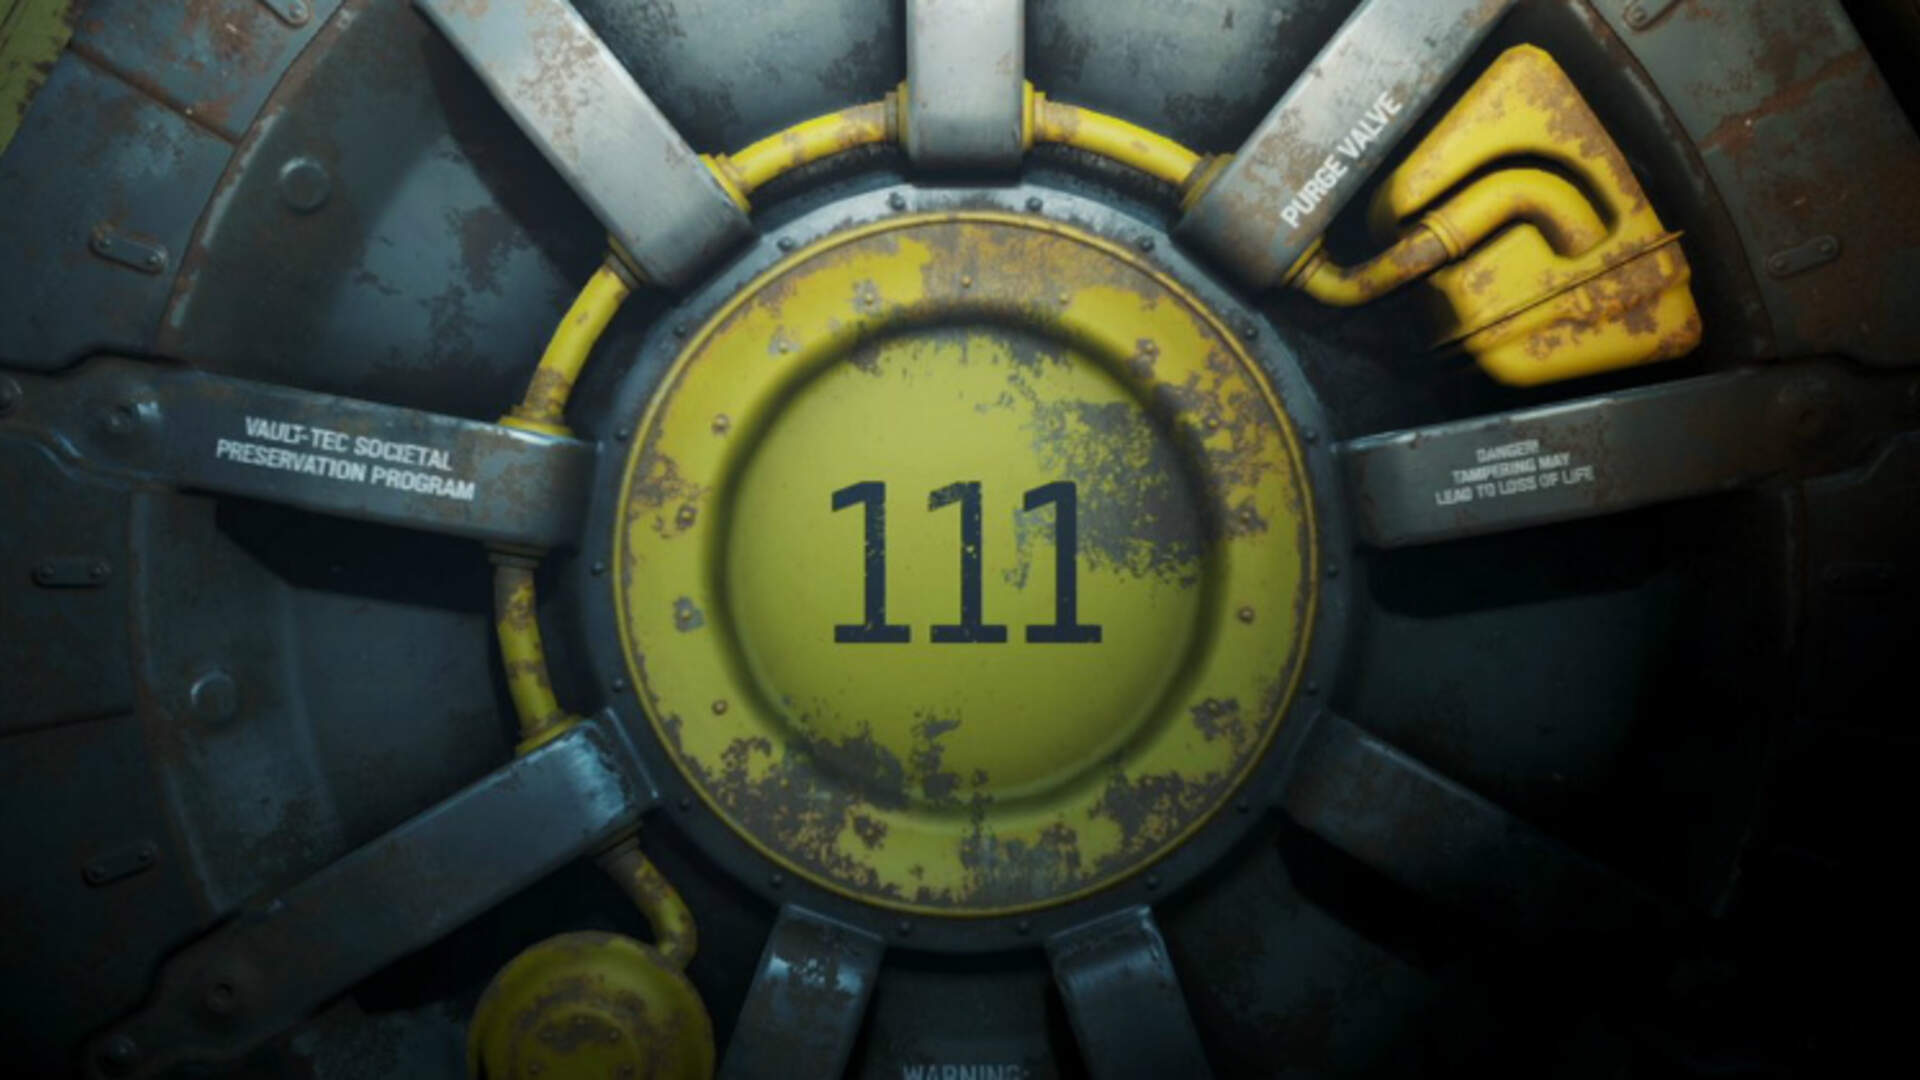 What Are the System Requirements for Fallout 4 on PC?